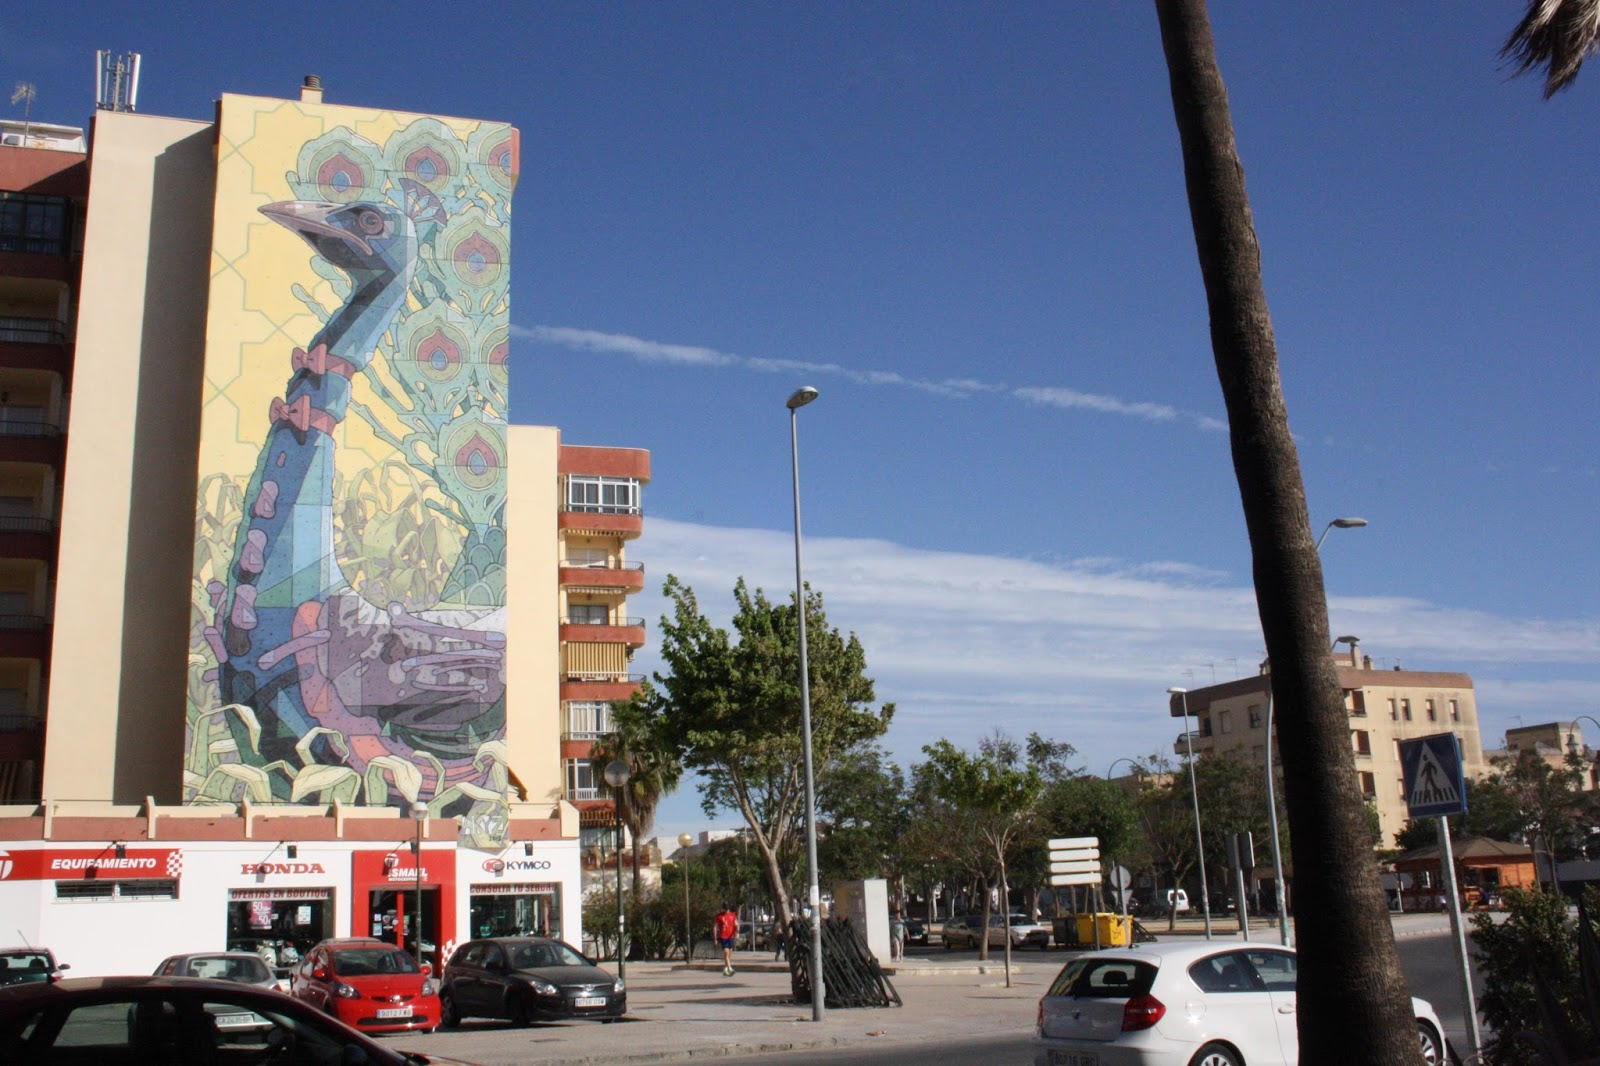 Sanlucar de Barrameda Spain  City pictures : streetartnews aryz Sanlucar de Barrameda Spain 6